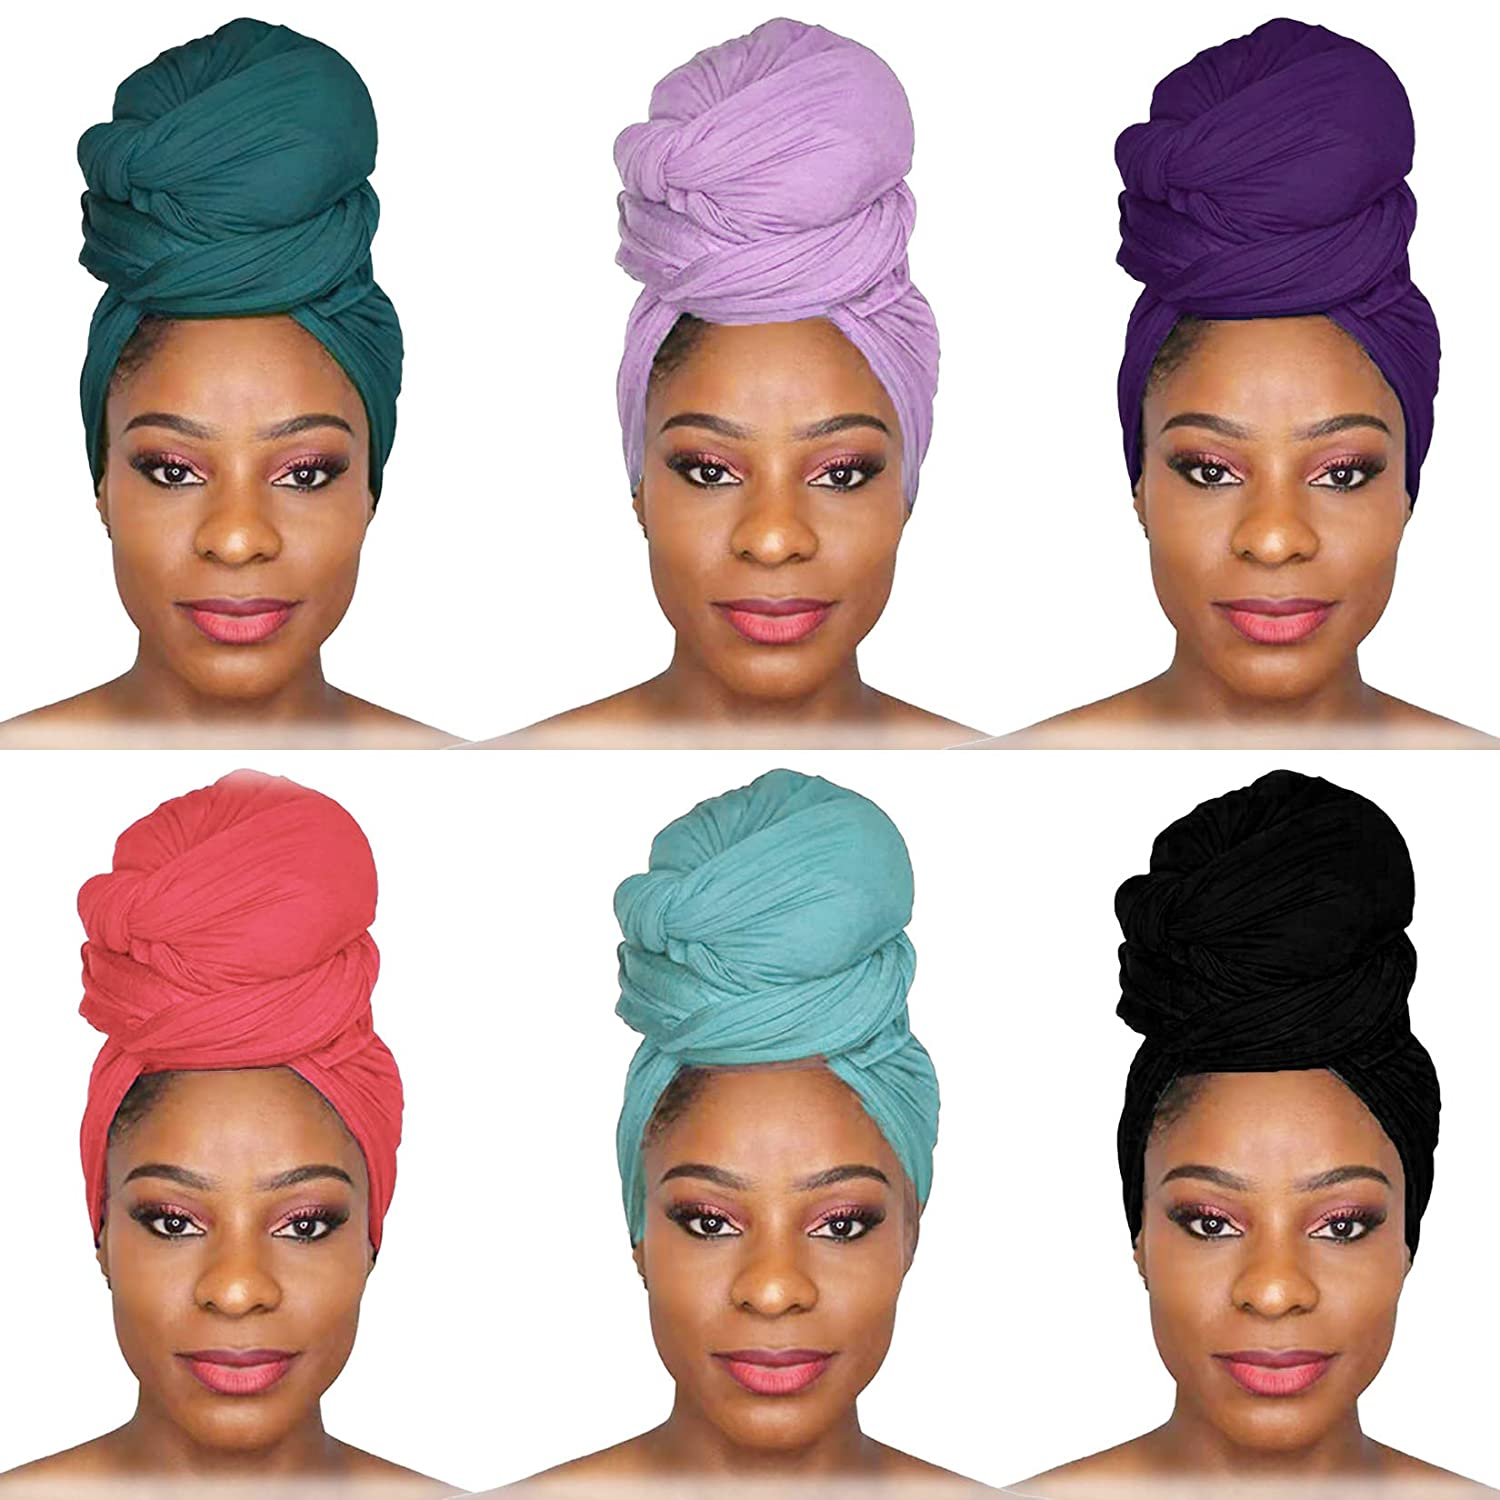 6 Pieces Fresno Mall Head Wraps Scarf Long Jersey Al sold out. Turban Ultra Soft Stretch